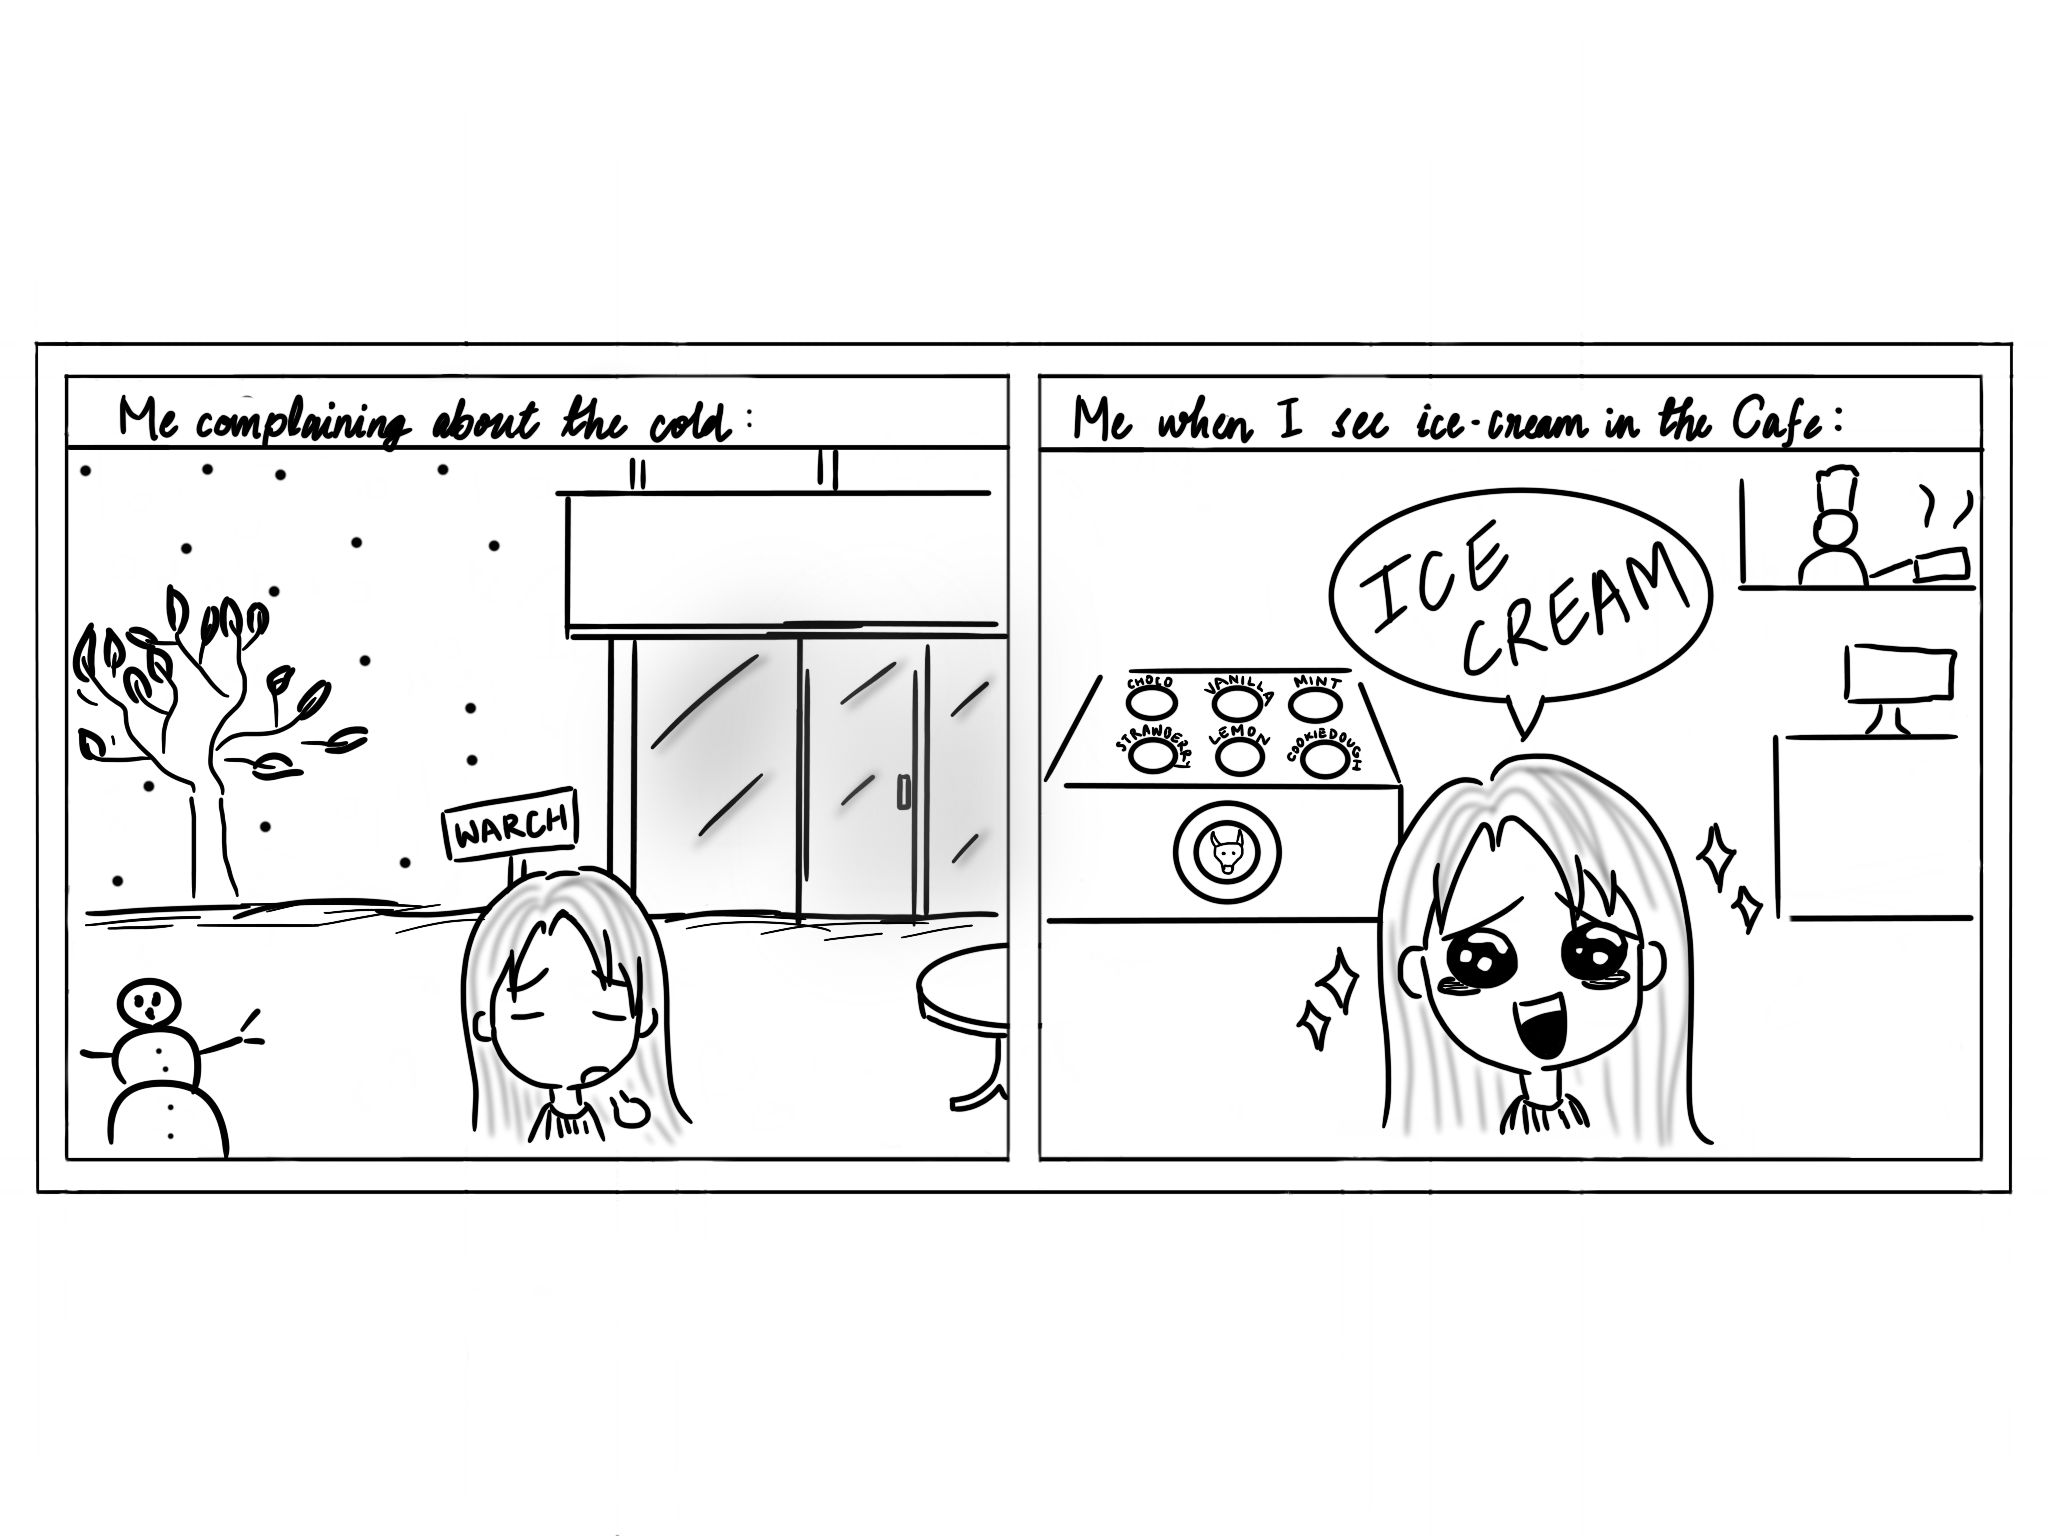 """comic: first panel has girl outside Warch campus center with he title """"me comparing about the cold"""", second panel has the title """"me when I see ice-cream int the cafe"""" with a girl saying """"ICE CREAM""""!"""